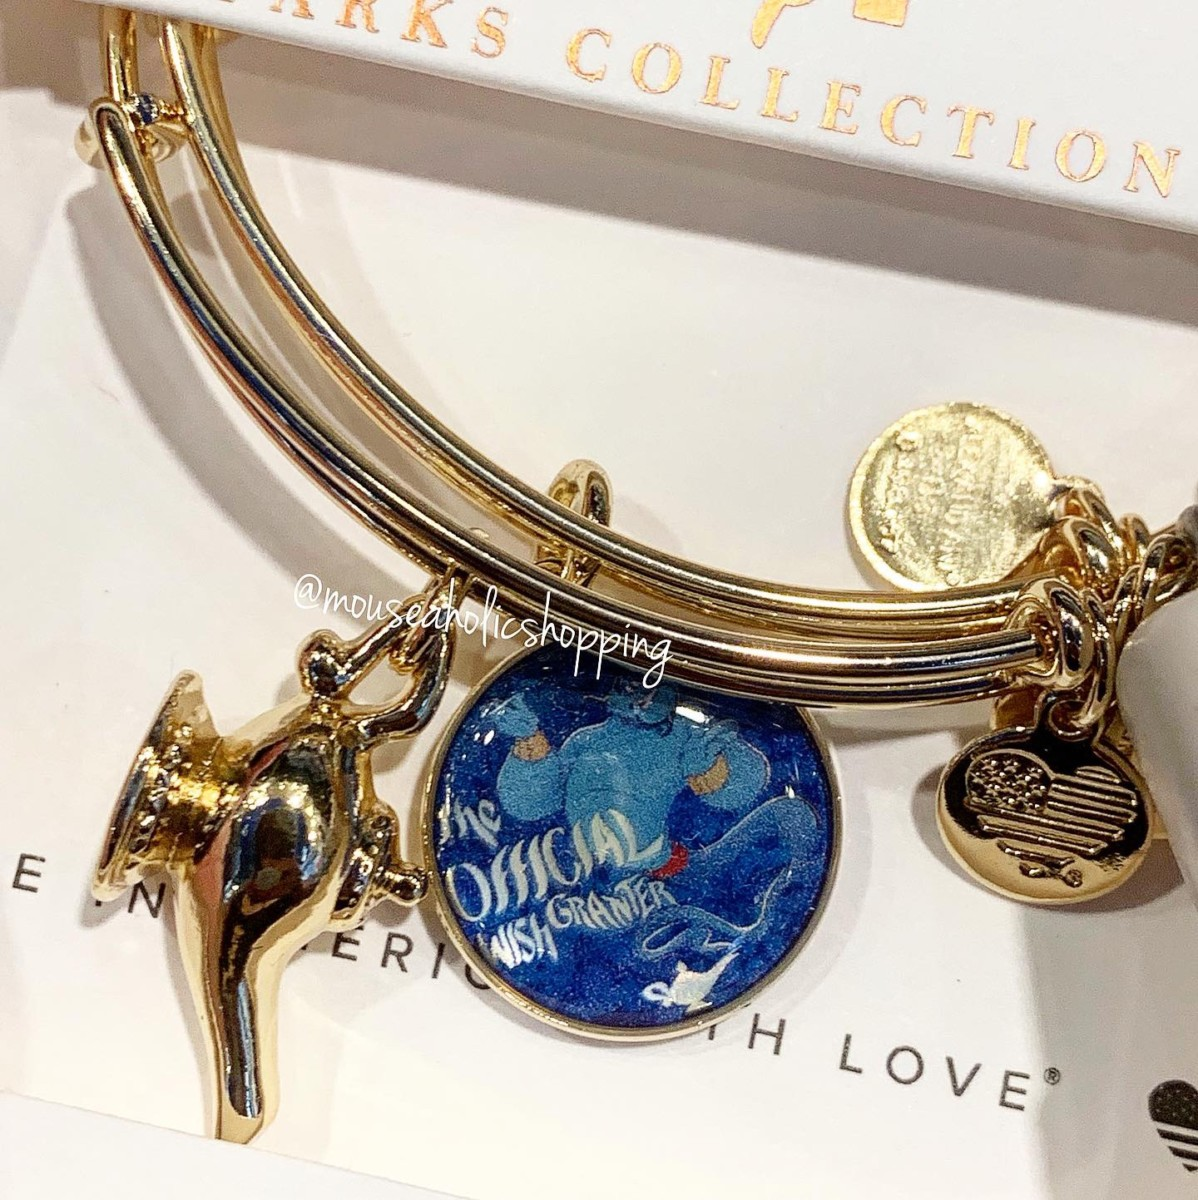 New Aladdin Inspired Alex and Ani Bracelets Are Shining, Shimmering Splendid #DisneyStyle 34